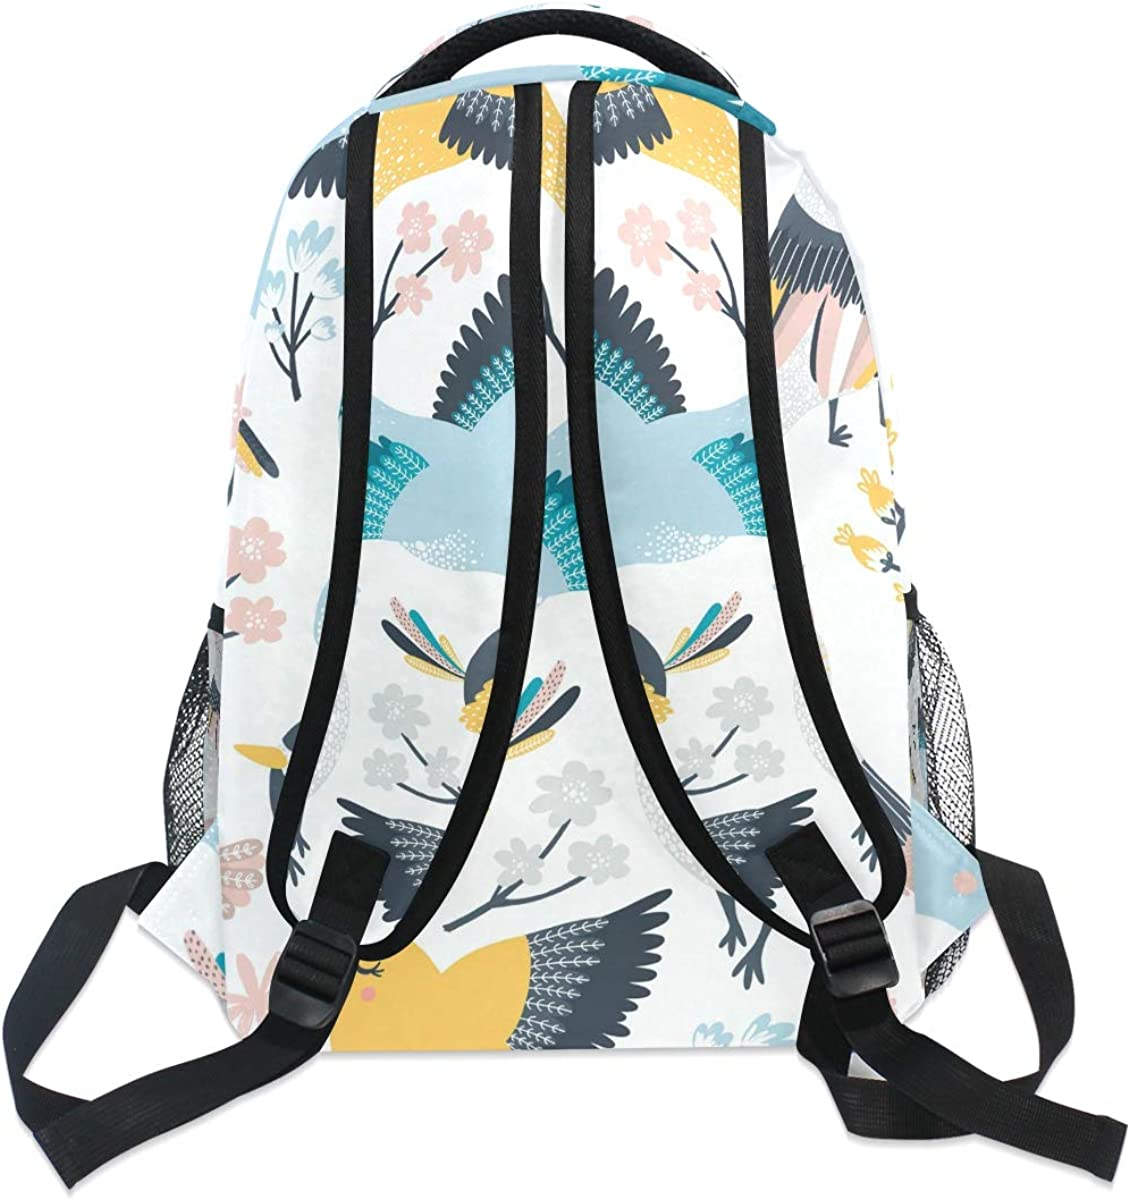 ILEEY Singing Birds Pattern Casual Backpack School Bag Computer Book Bag Travel Hiking Camping Daypack for Girls Boys Men and Women